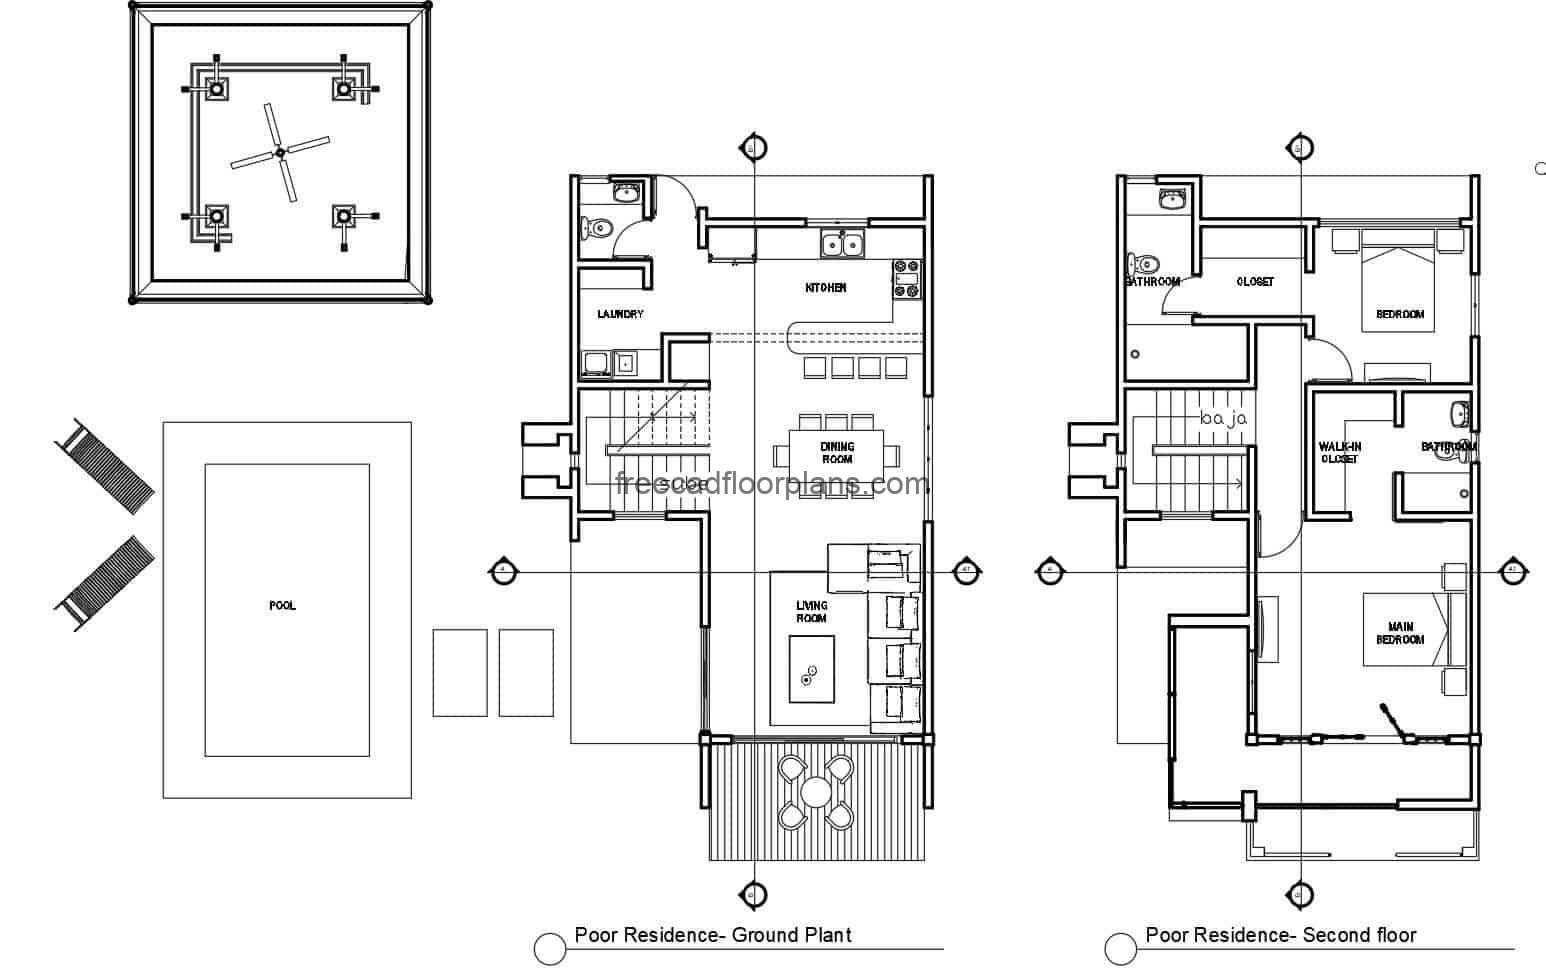 architectural draft in autocad DWG format of modern house with swimming pool